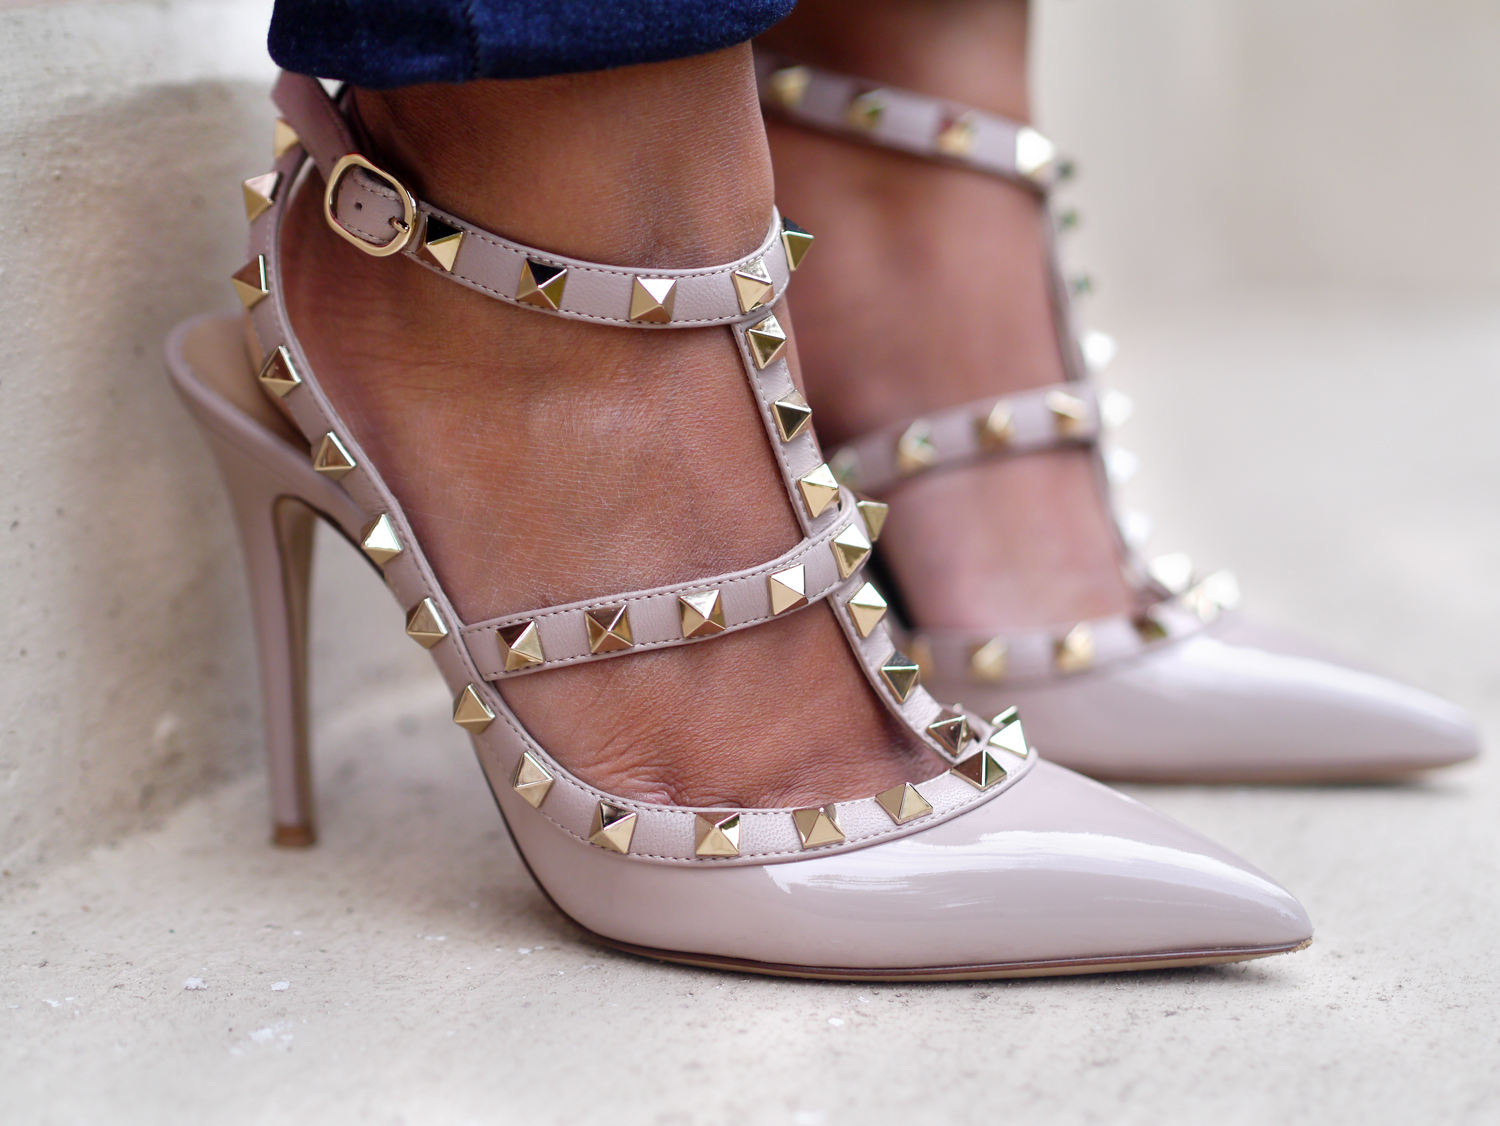 Buying the Valentino Rockstud heels